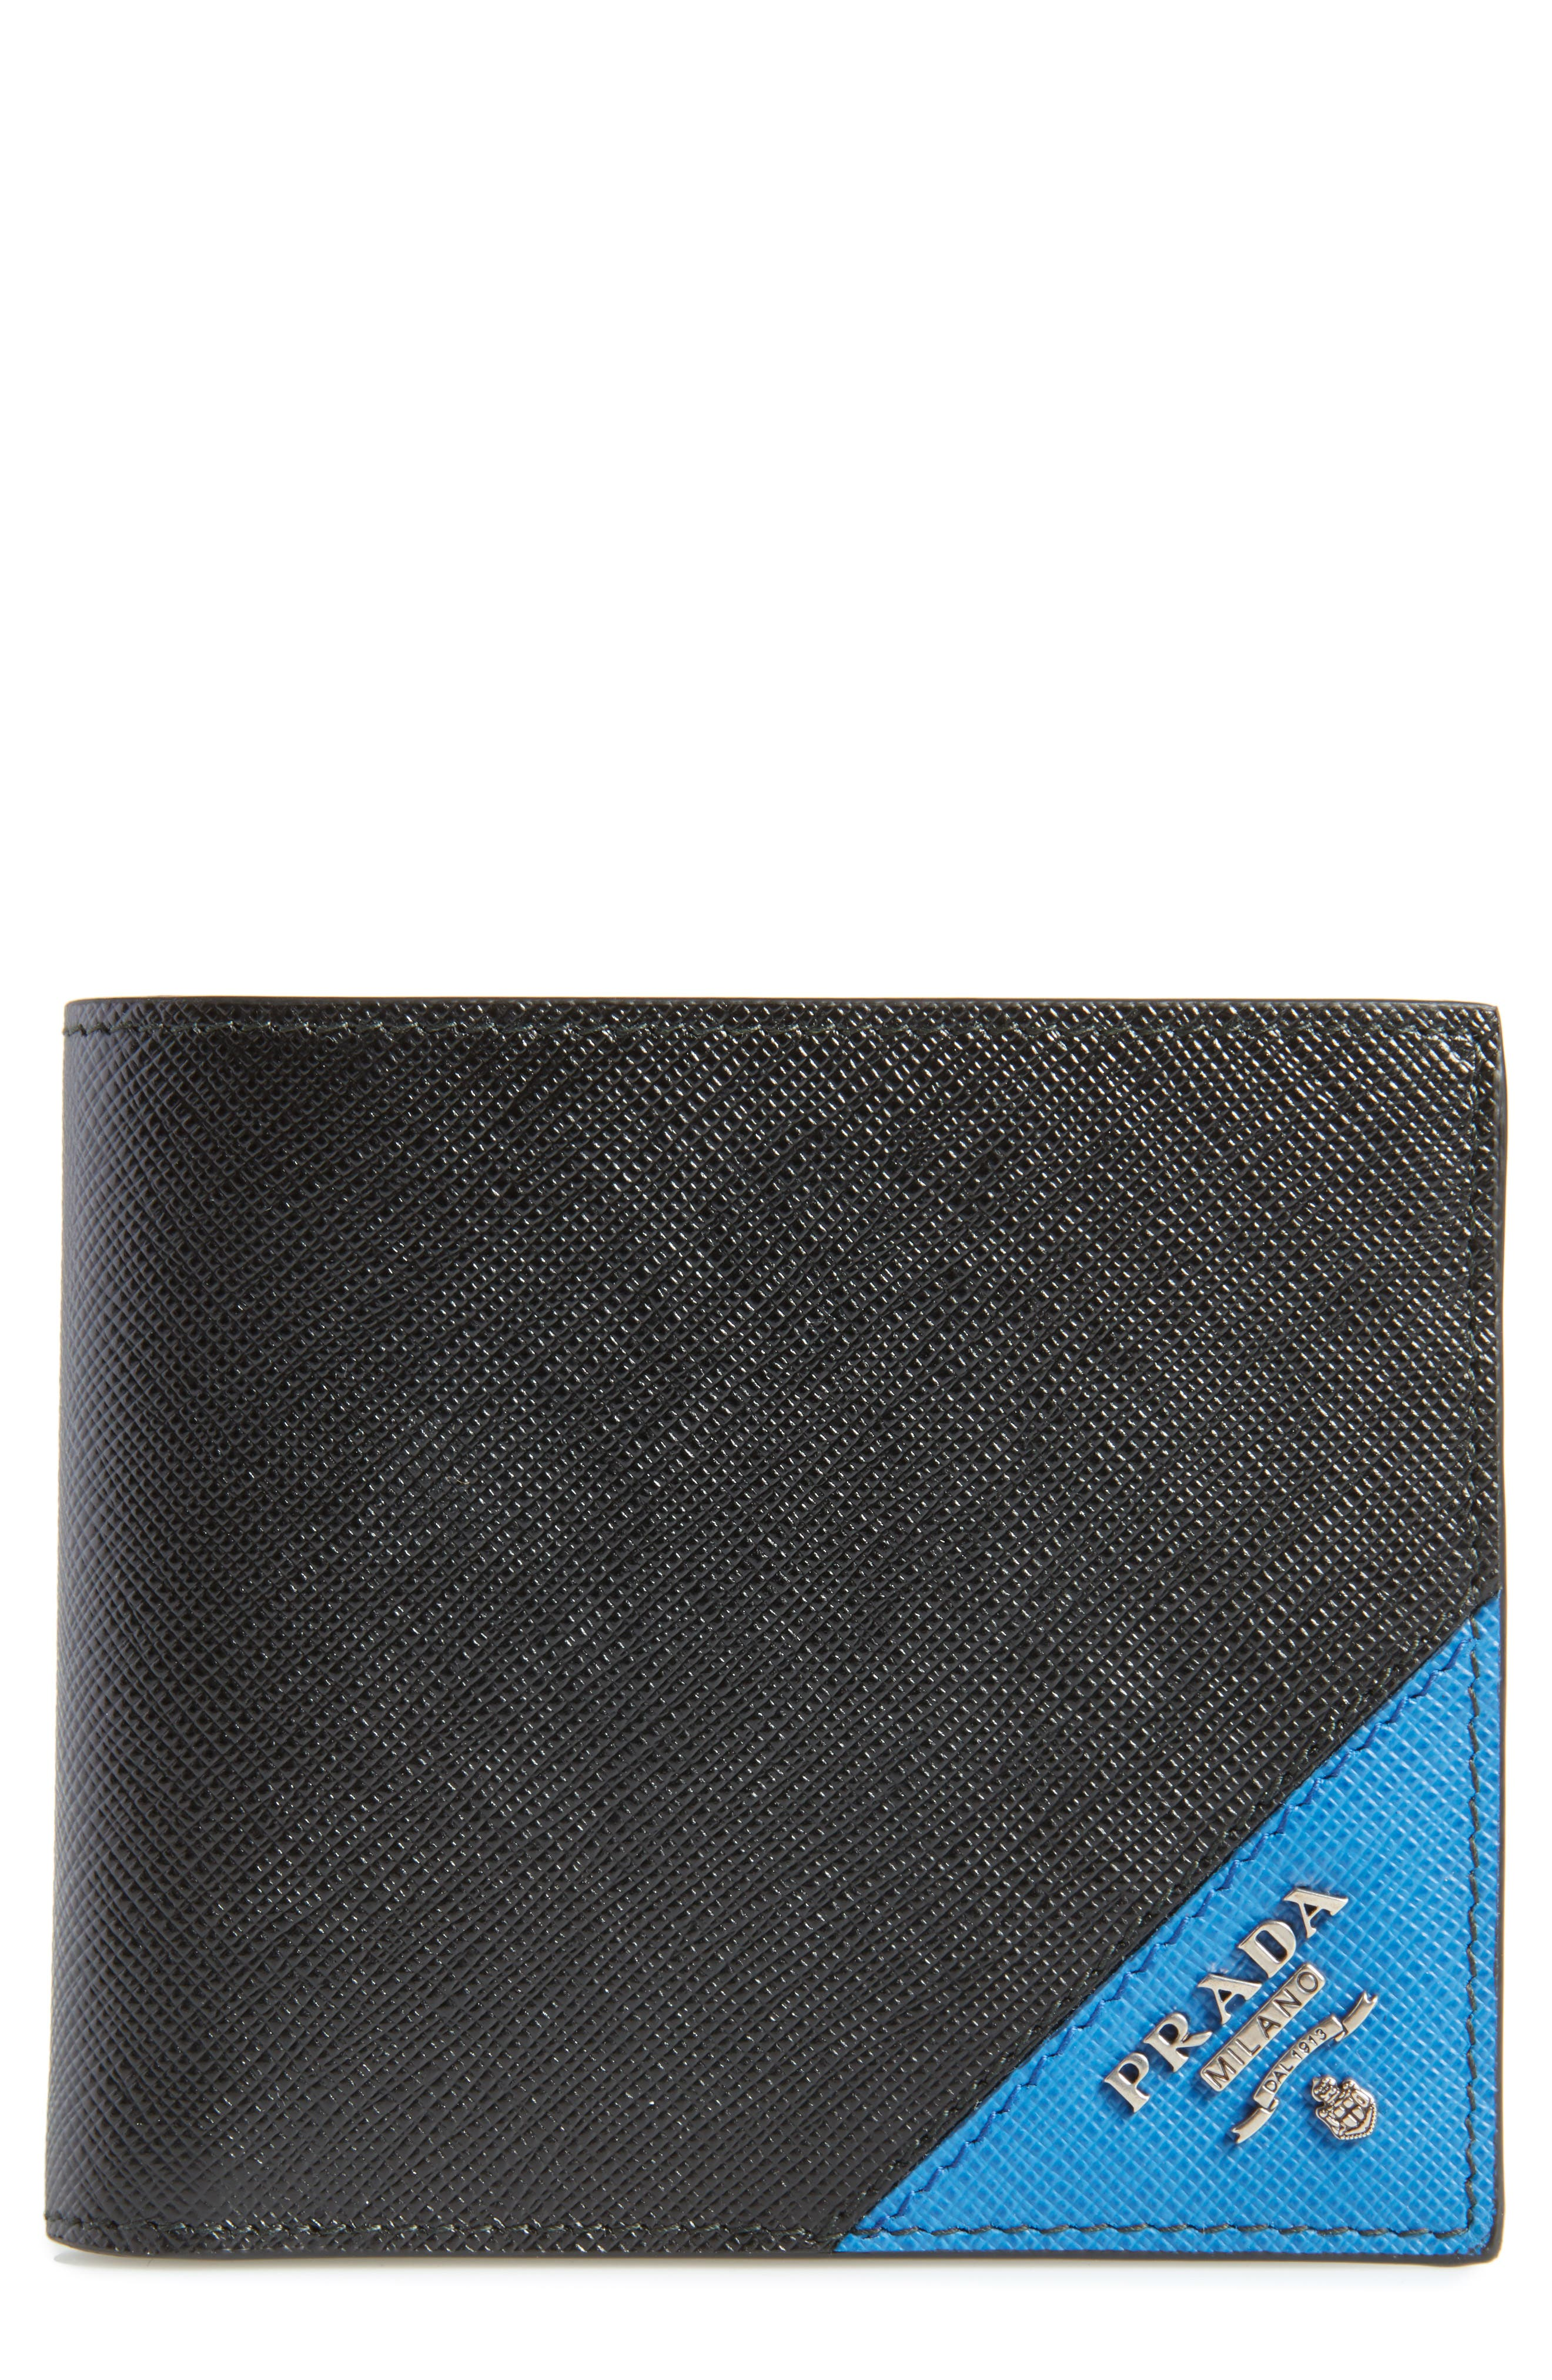 Saffiano Leather Billfold Wallet,                         Main,                         color, NERO AND CERISE